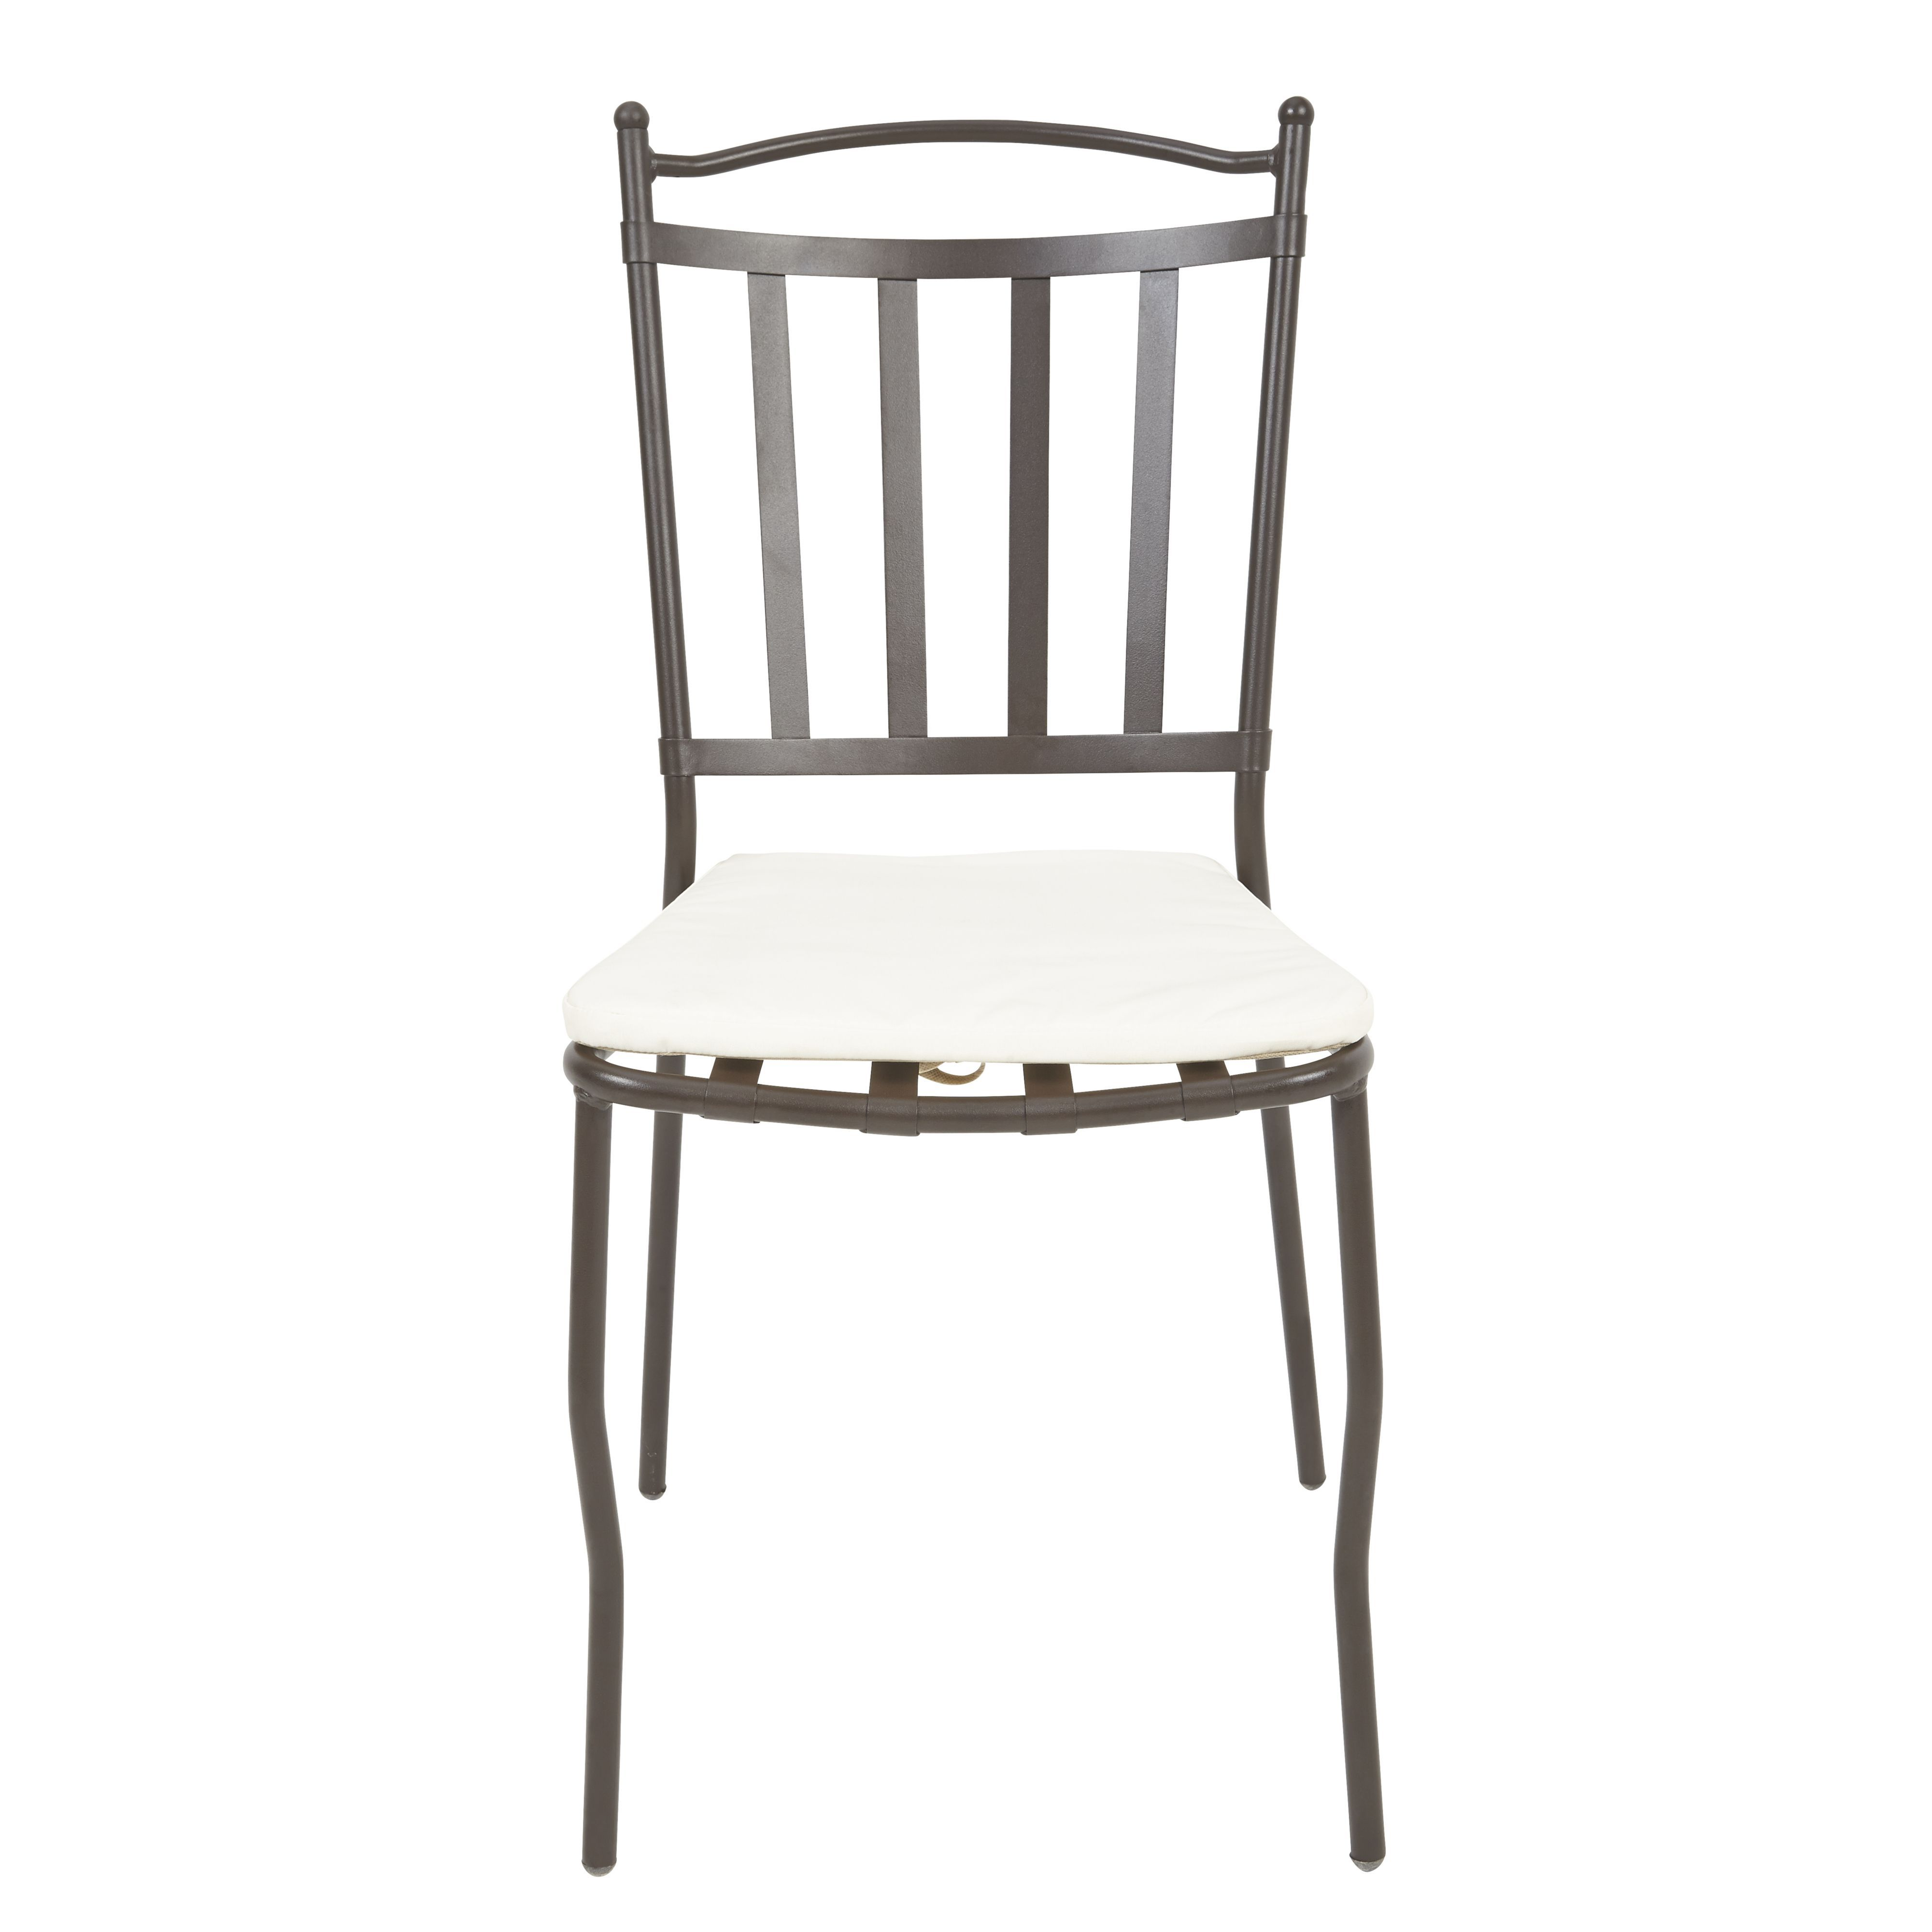 Metal outdoor dining chairs - Sofia Metal Dining Chair